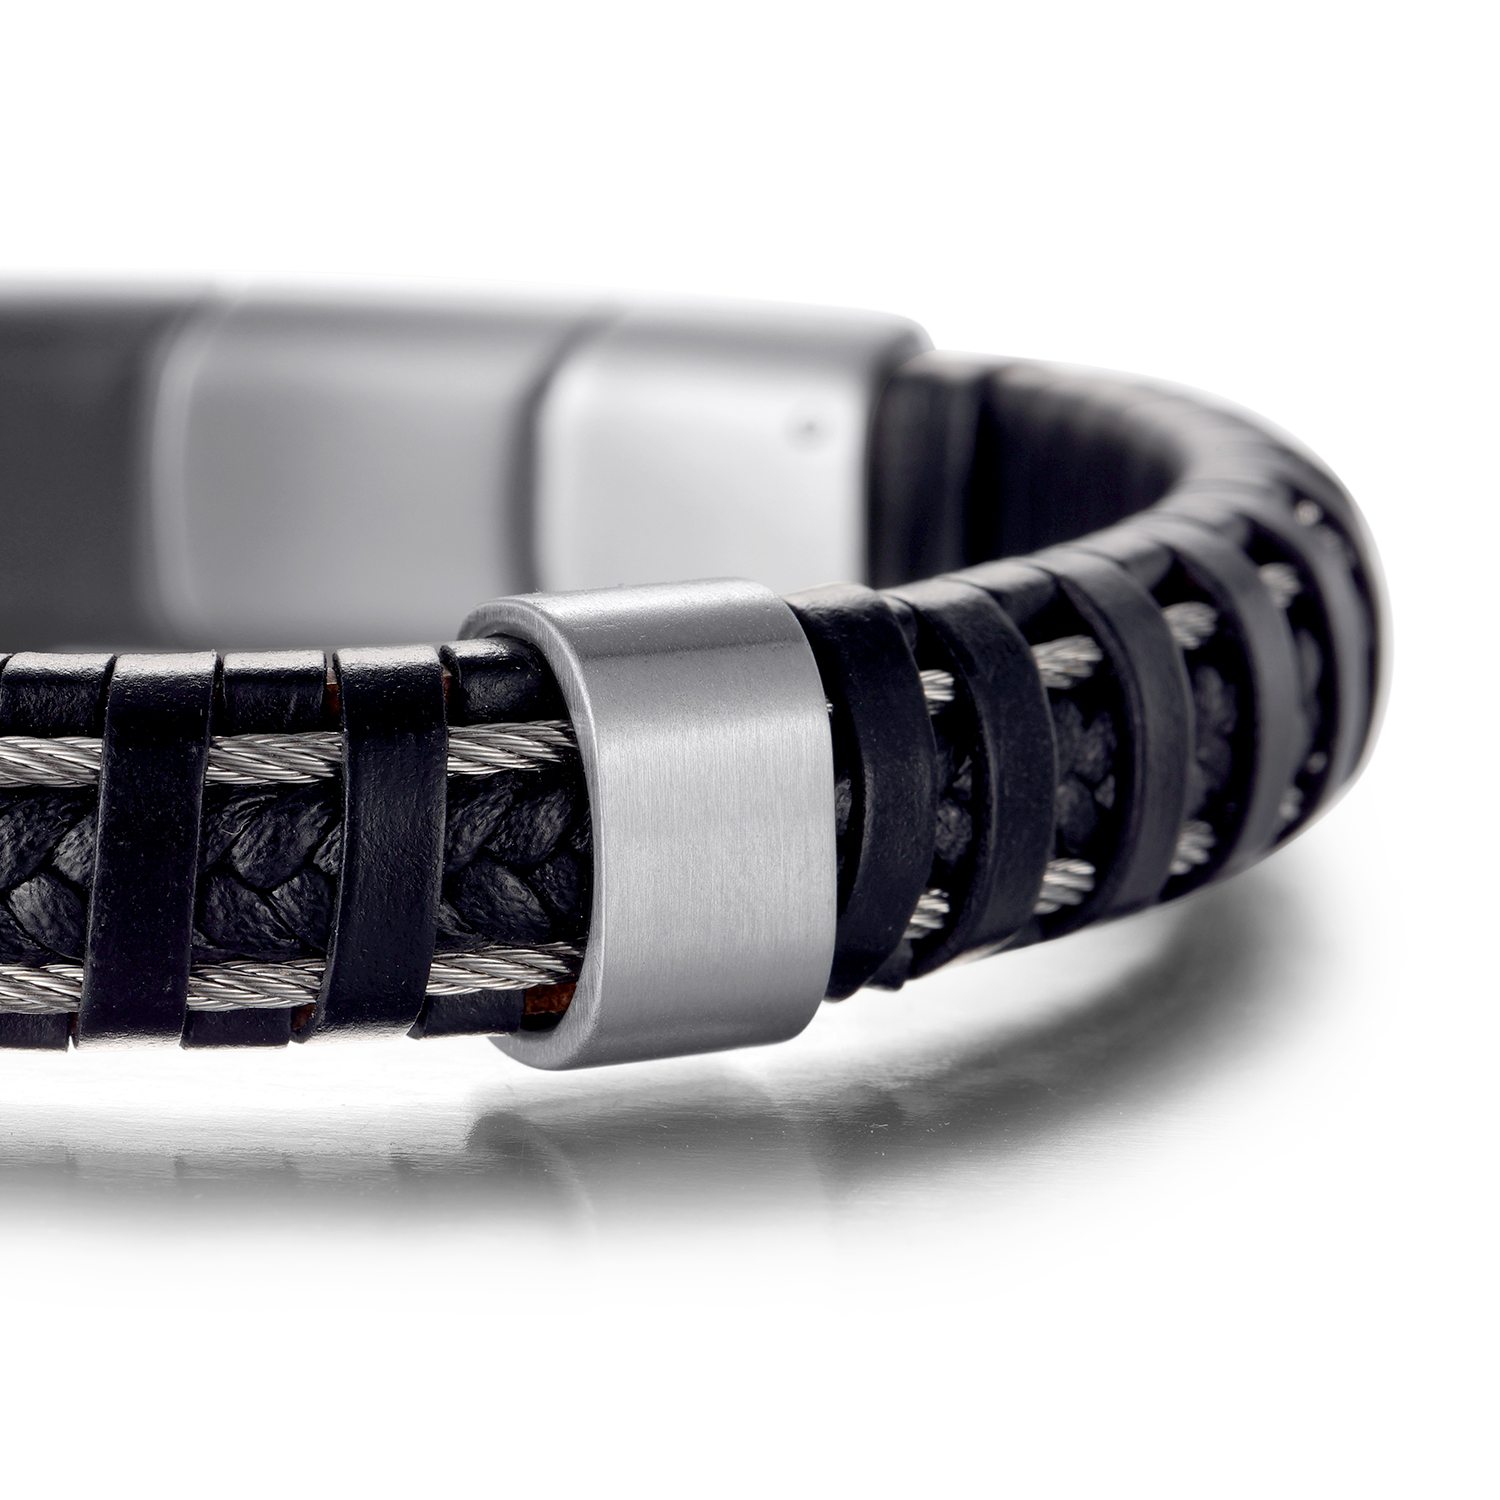 H69264780fa1c4b9d9a35506f142f937c5 - Hard leather Bracelets Jewelry for pain relief